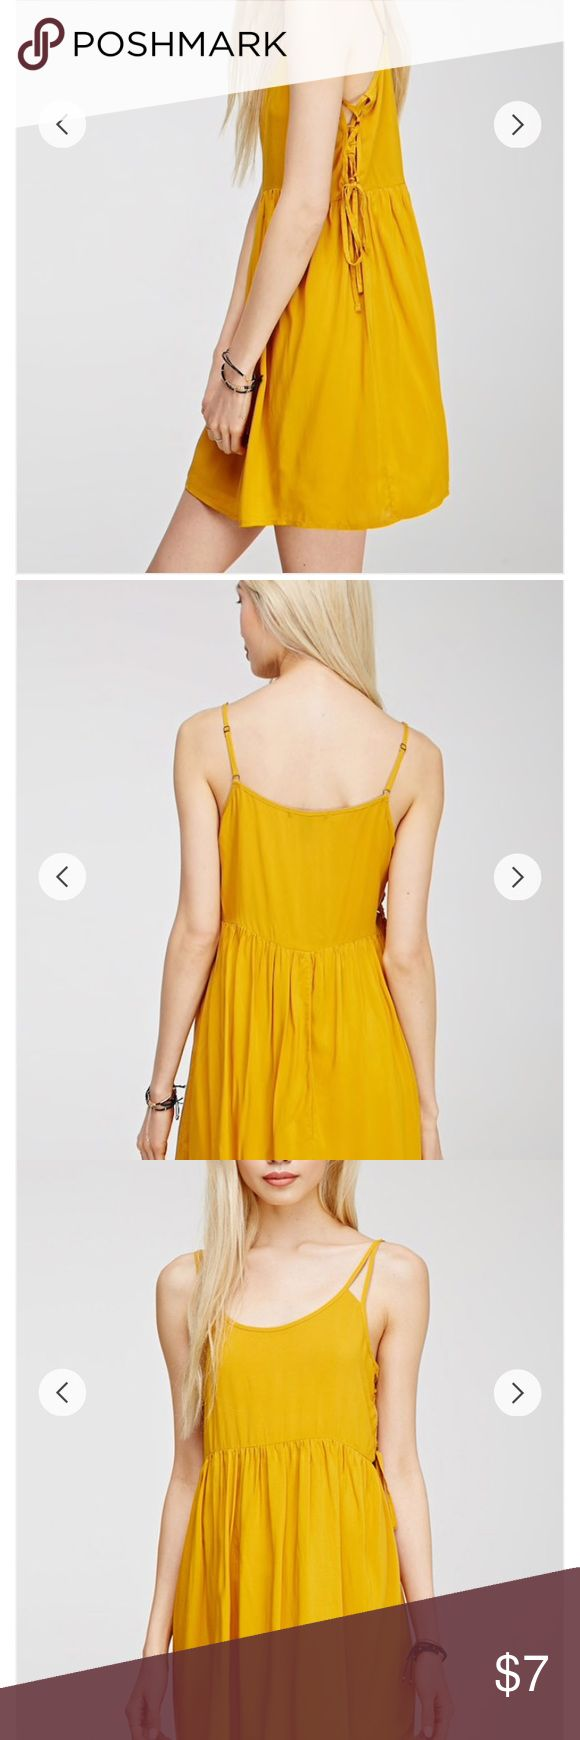 Yellow cami shift dress with criss cross sides NWOT yellow/mustard shift dress with cross-crossed sides. Forever 21 Dresses